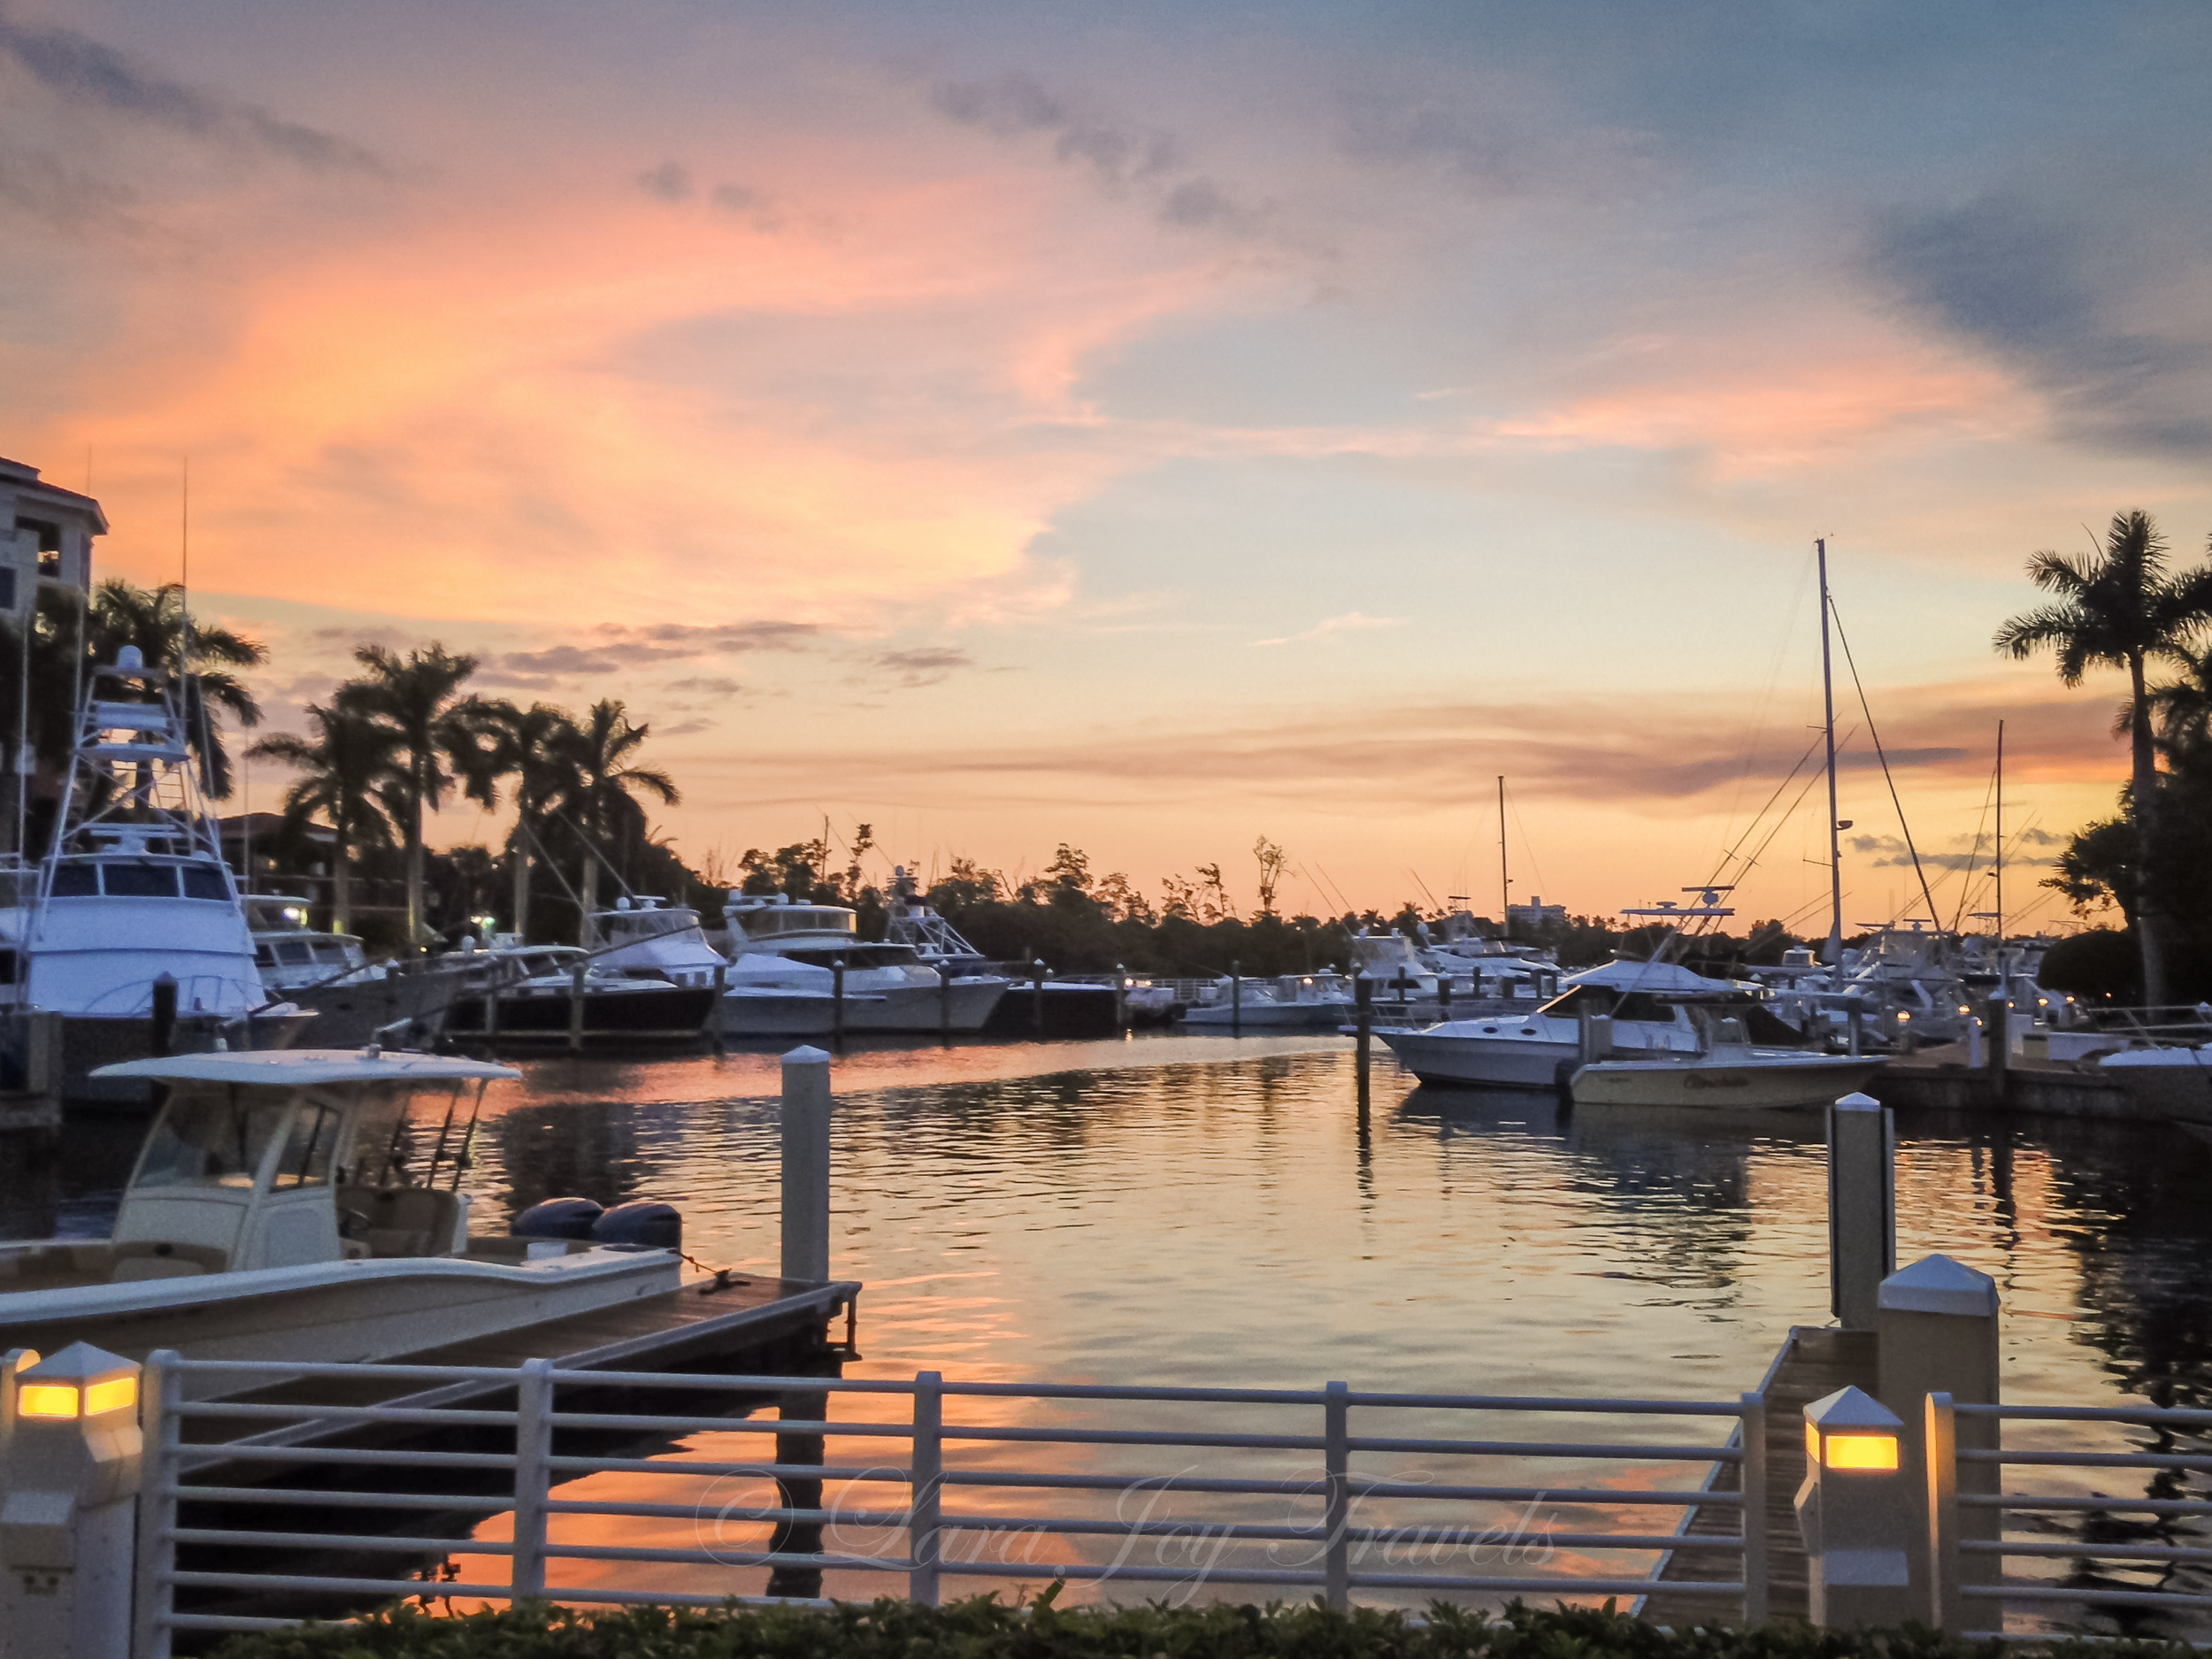 """Not only did I not have my dSLR for this sunset, but there was an annoying building blocking it as well. After dinner, I walked along the dock and found the perfect sunset spot for """"next time."""""""